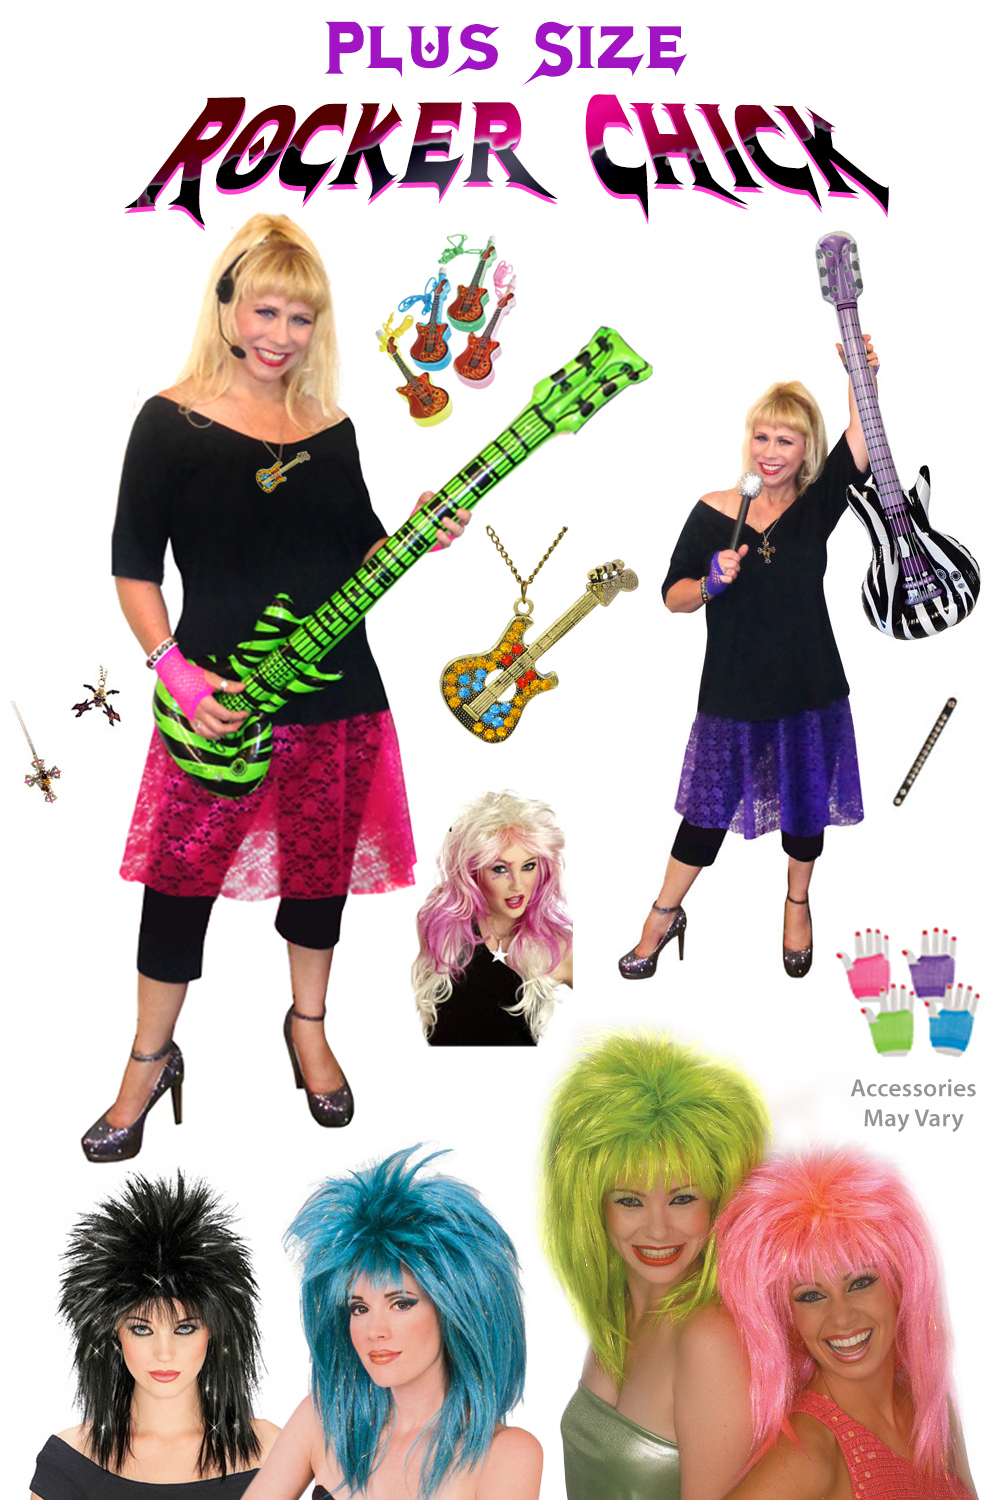 Rocker Chick Pop Star Plus Size Costume Supersize Halloween Costume + Add Accessories! Sizes Lg XL 1x 2x 3x 4x 5x 6x 7x 8x 9x  sc 1 th 275 : rocker chick halloween costume  - Germanpascual.Com